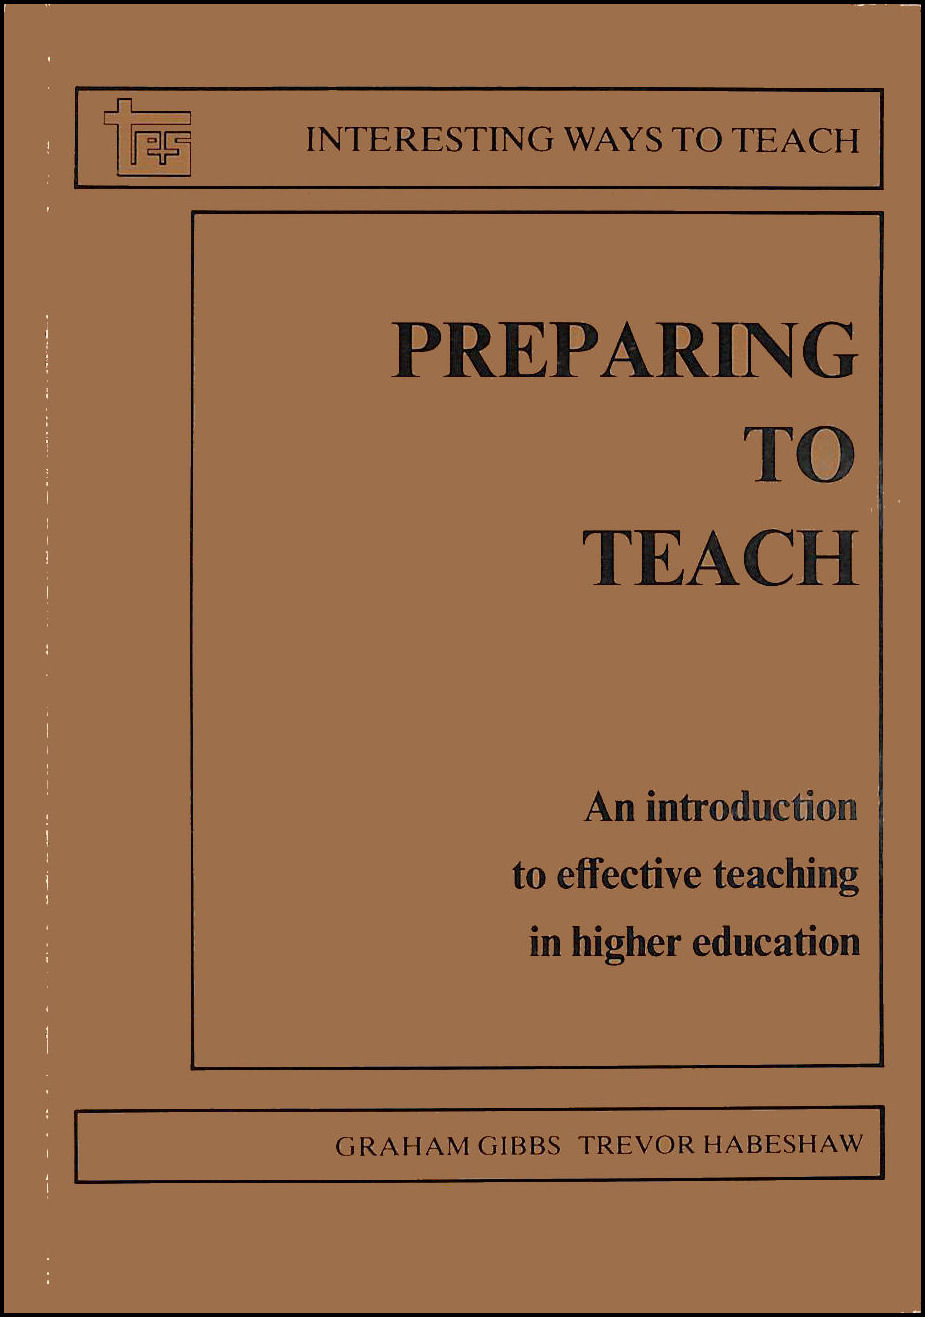 Preparing to Teach: An Introduction to Effective Teaching in Higher Education (Interesting ways to teach), Gibbs, Graham; Habeshaw, Trevor